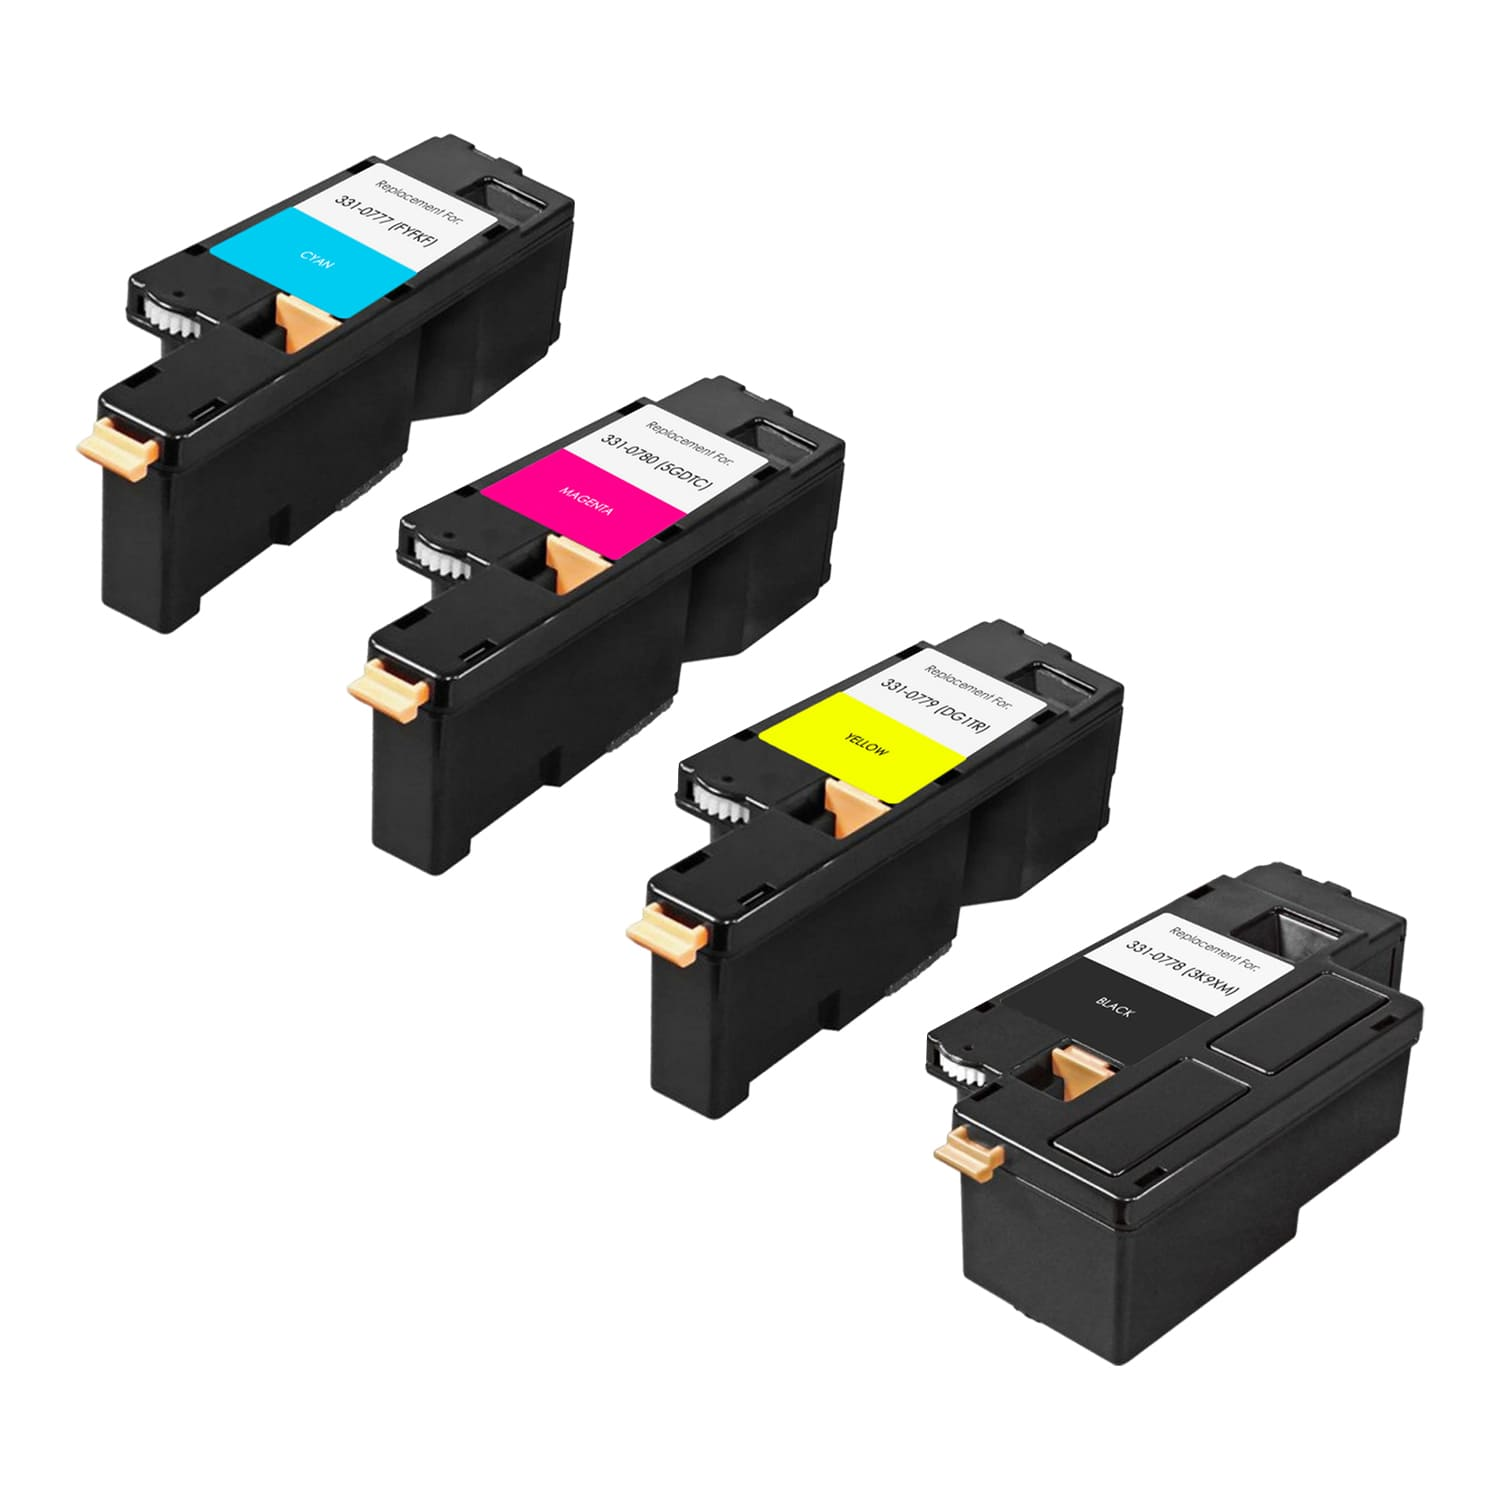 Compatible Dell 1755 Toner High Capacity Pack - 4 Cartridges